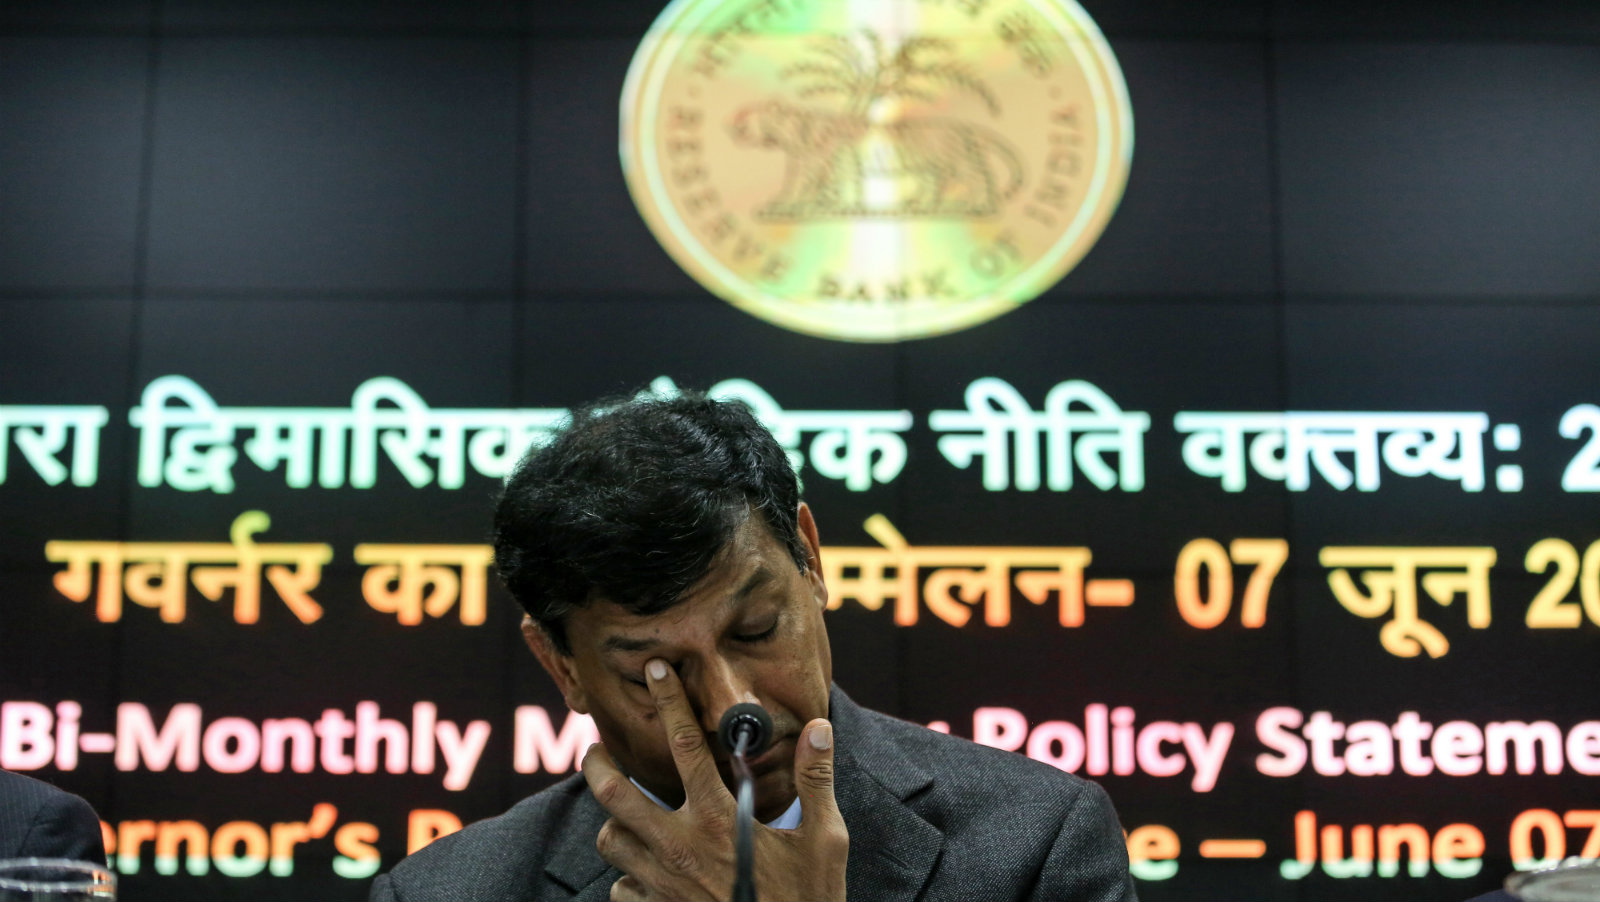 Raghuram Rajan, Governor of the Reserve Bank of India (RBI), reacts a media conference after the second bi-monthly monetary policy statement 2016-17 at the RBI head office, in Mumbai, India, 07 June 2016. According to reports, the Reserve Bank of India (RBI) kept the repo rate unchanged at 6.5 per cent. The repo rate is the discount rate at which central banks repurchase government securities from commercial banks.